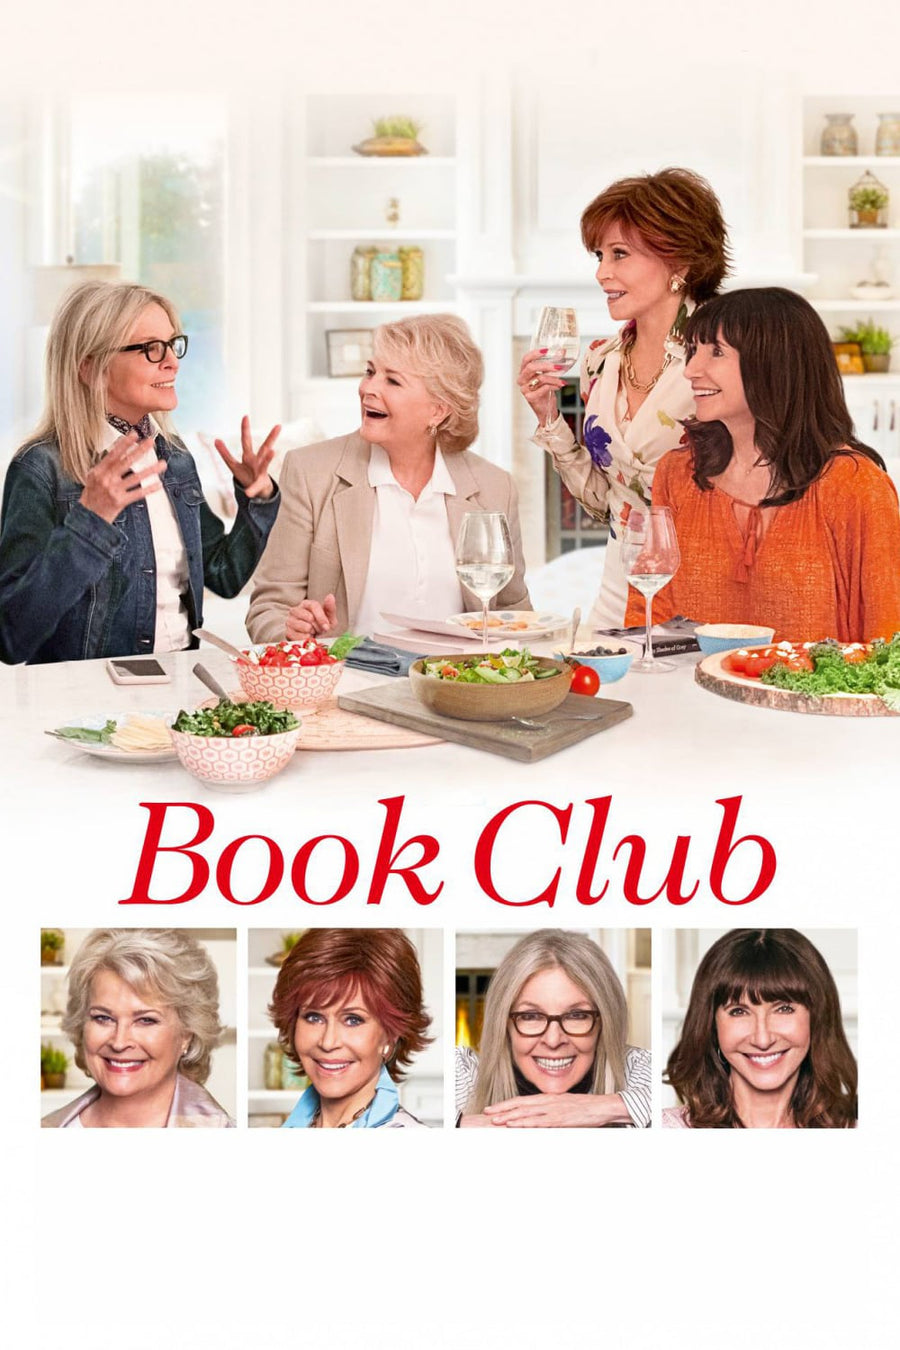 Bookclub [iTunes 4K] - PG-13